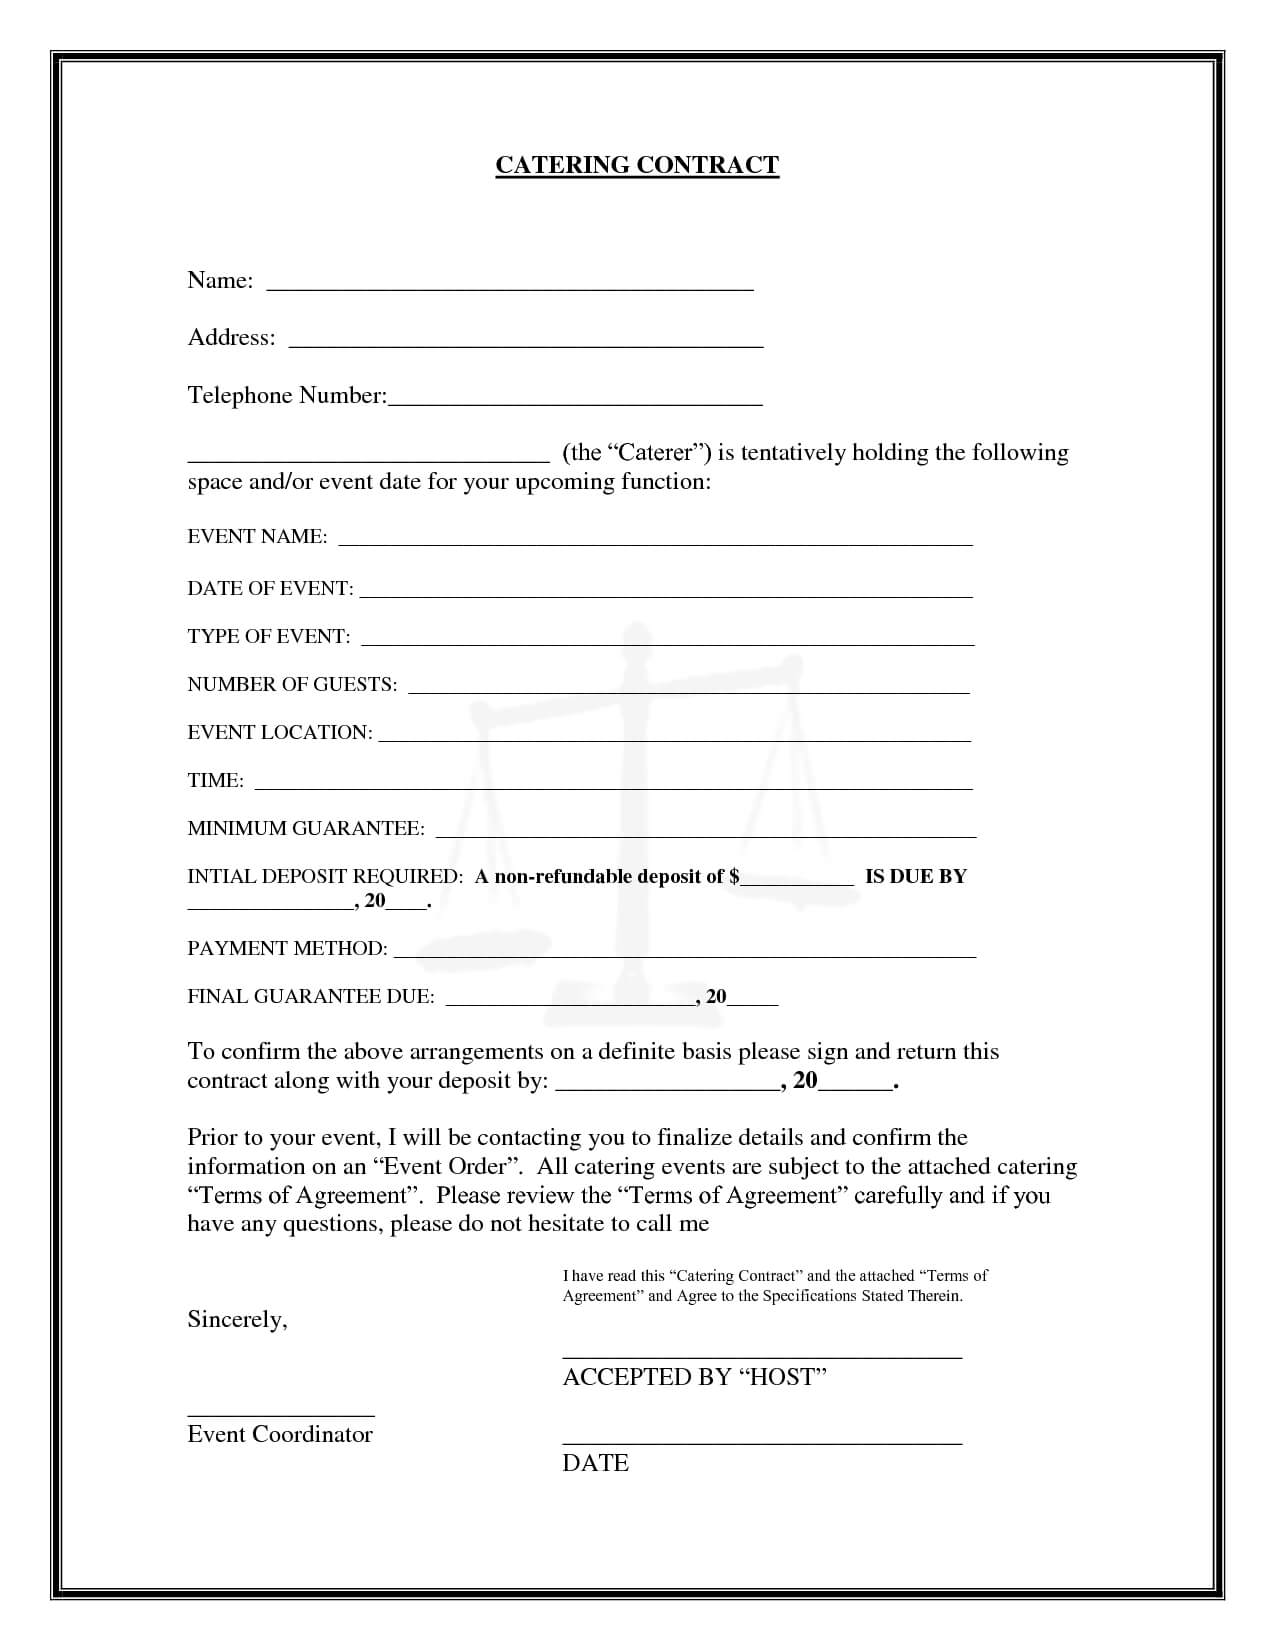 Catering Contract Catering Contract Name | Starting A Within Catering Contract Template Word